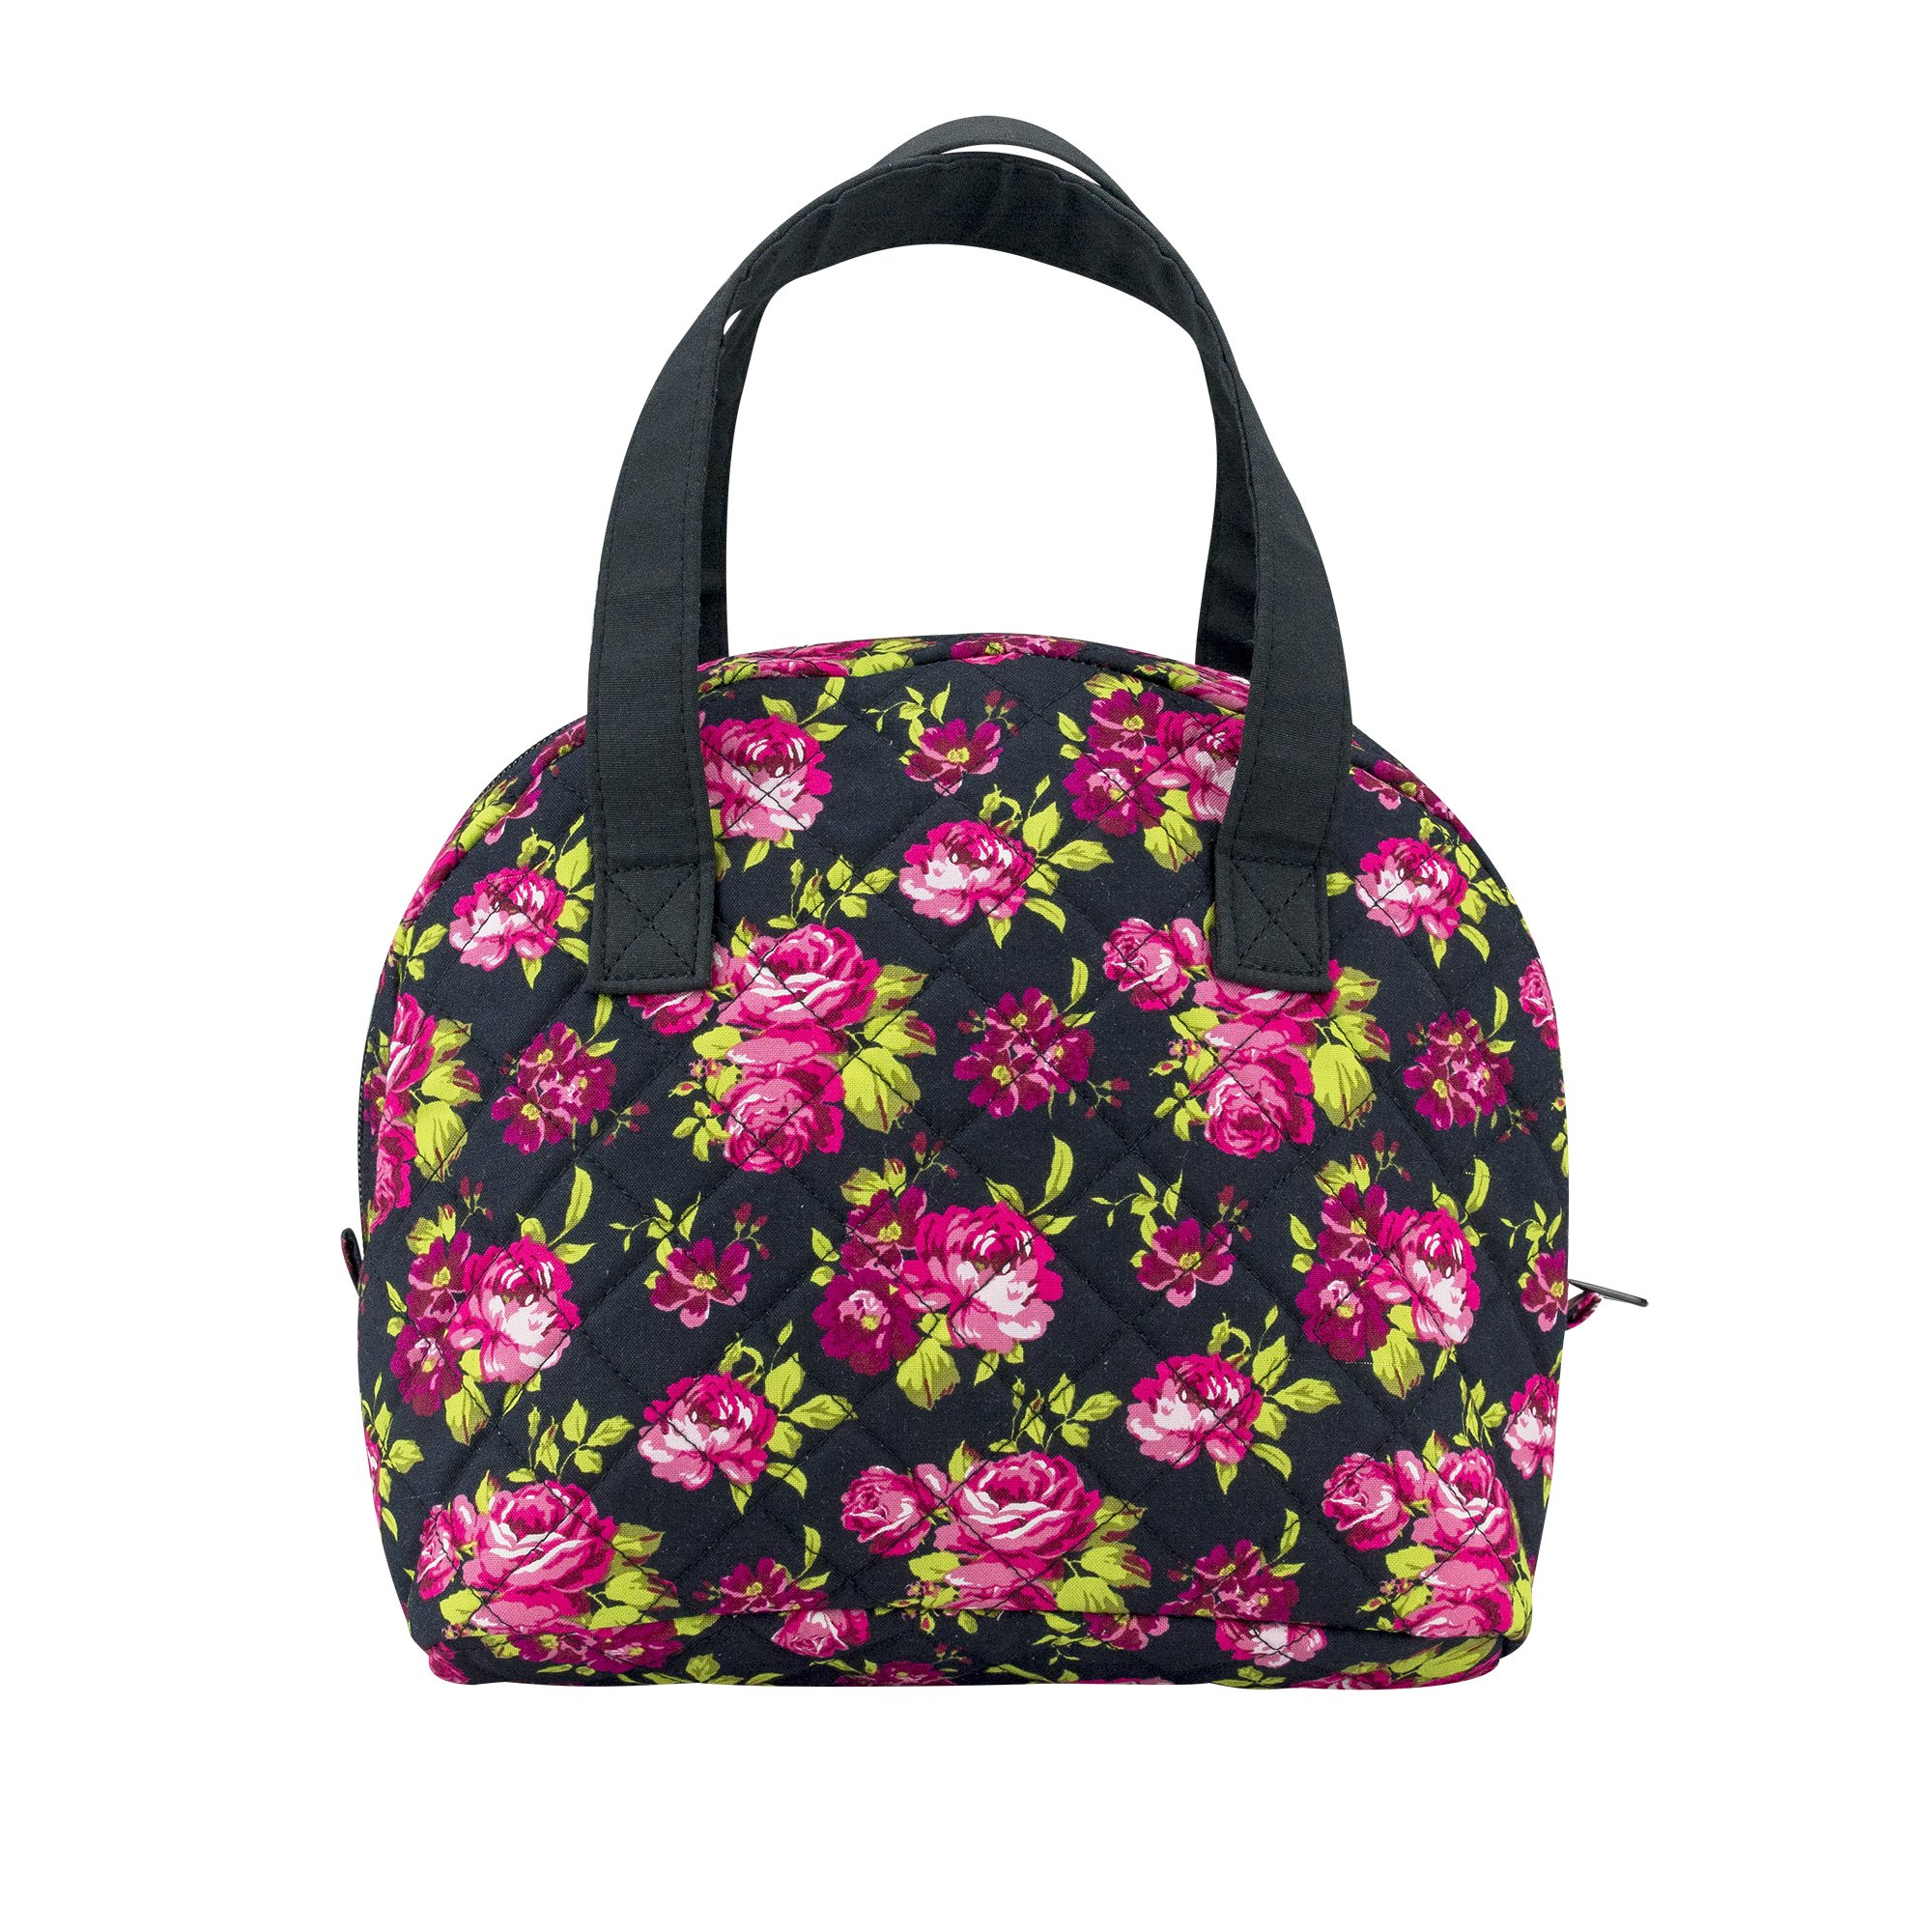 Sheffield Home Quilted Floral Print Insulated Zippered Double Handle Lunch Tote W/Plastic Container For Women (Floral Print)